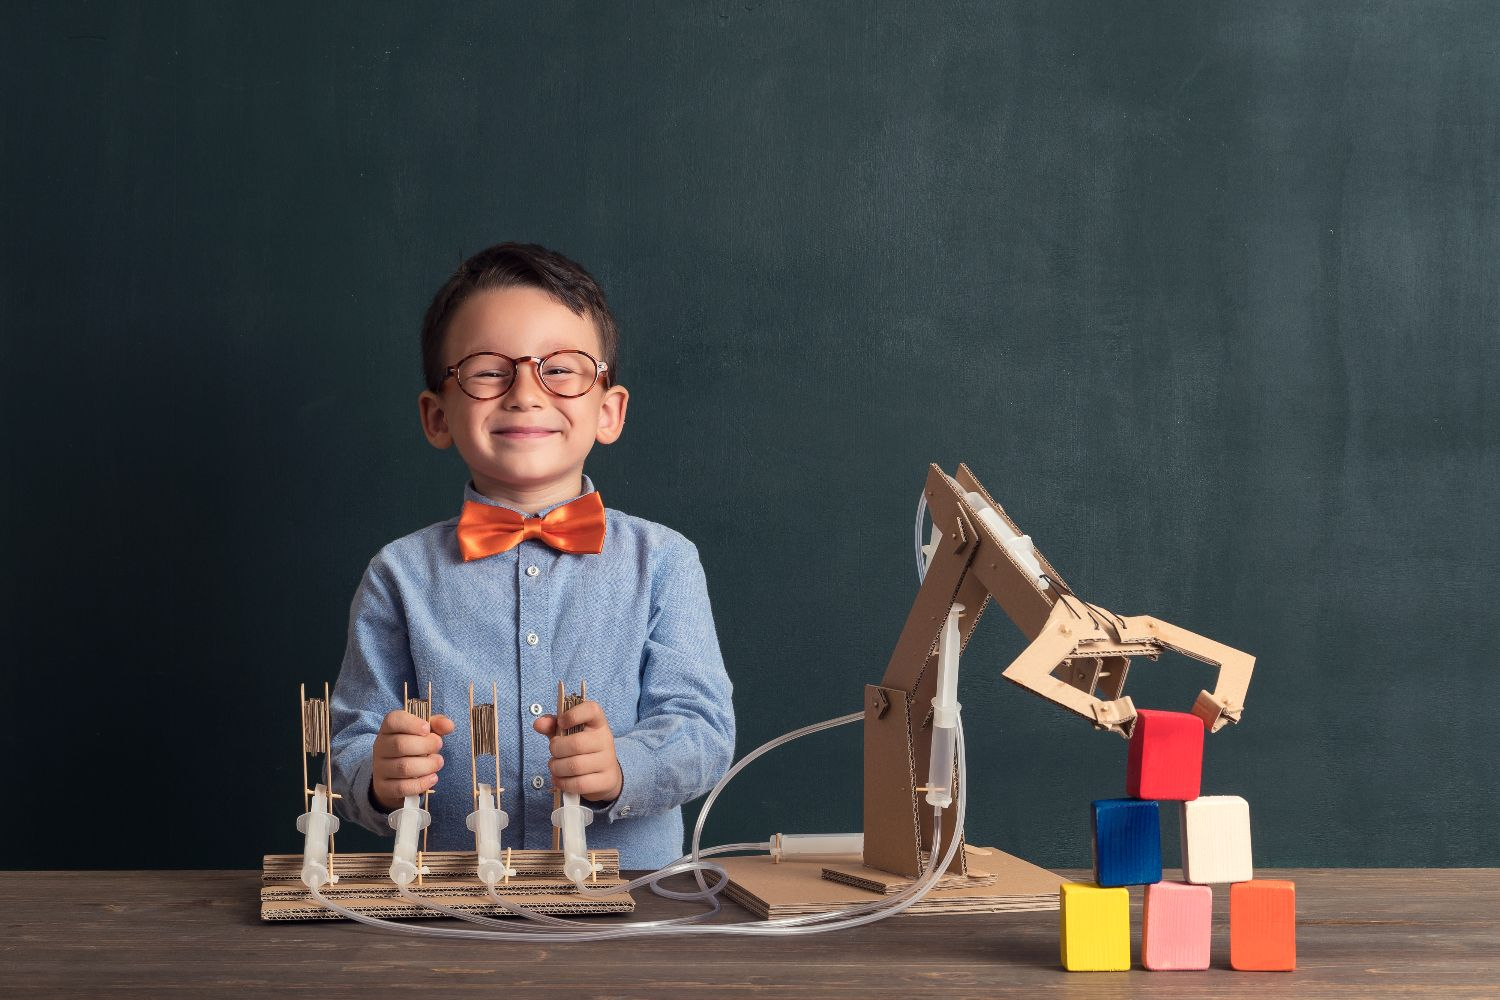 kid playing with science experiment